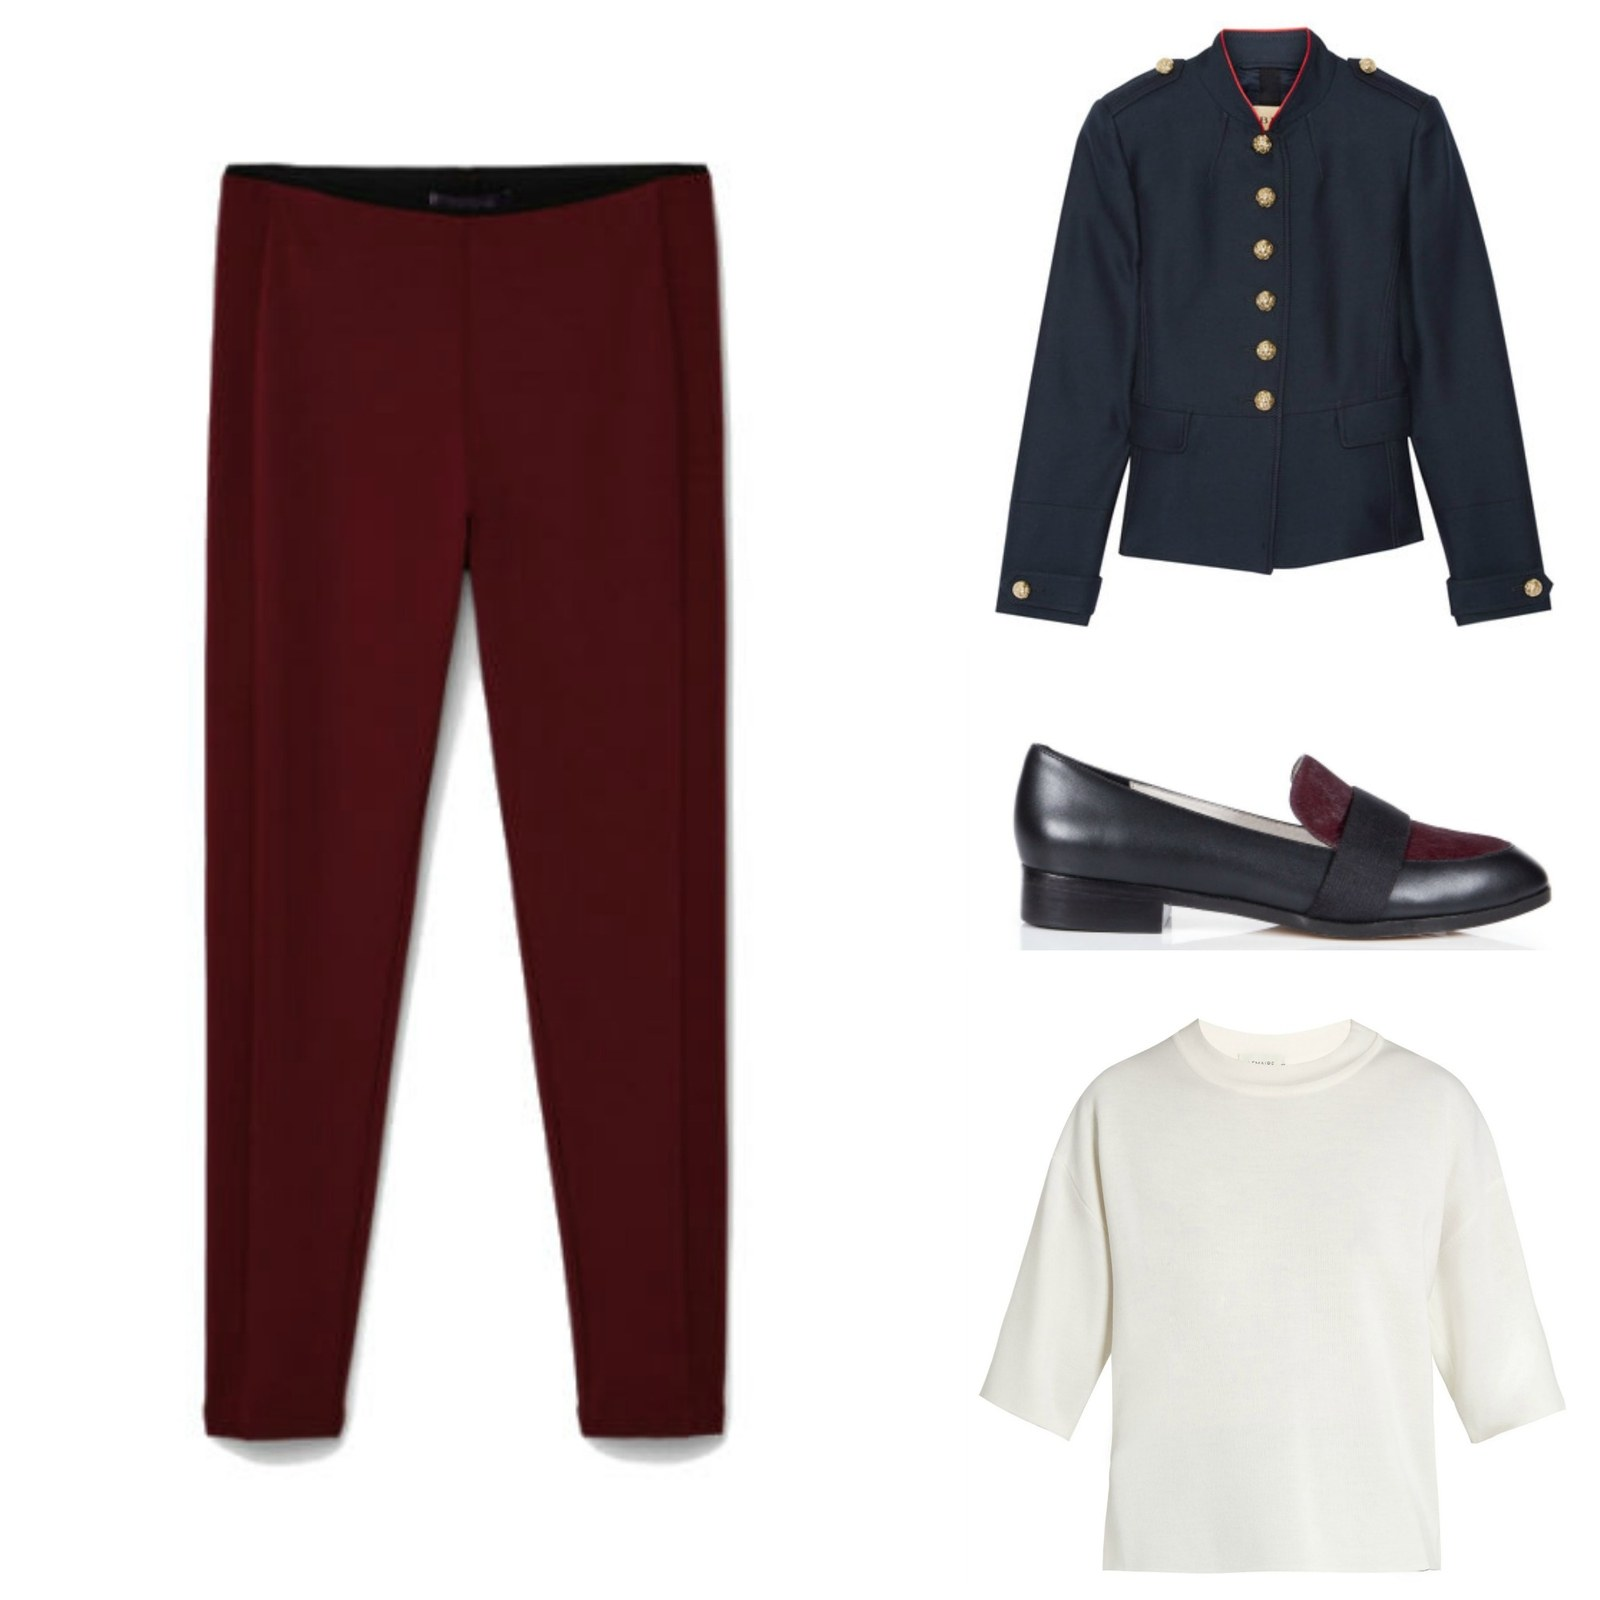 burgundy-leggings-black-jacket-blazer-black-shoe-loafers-white-sweater-fall-winter-office-work.jpg